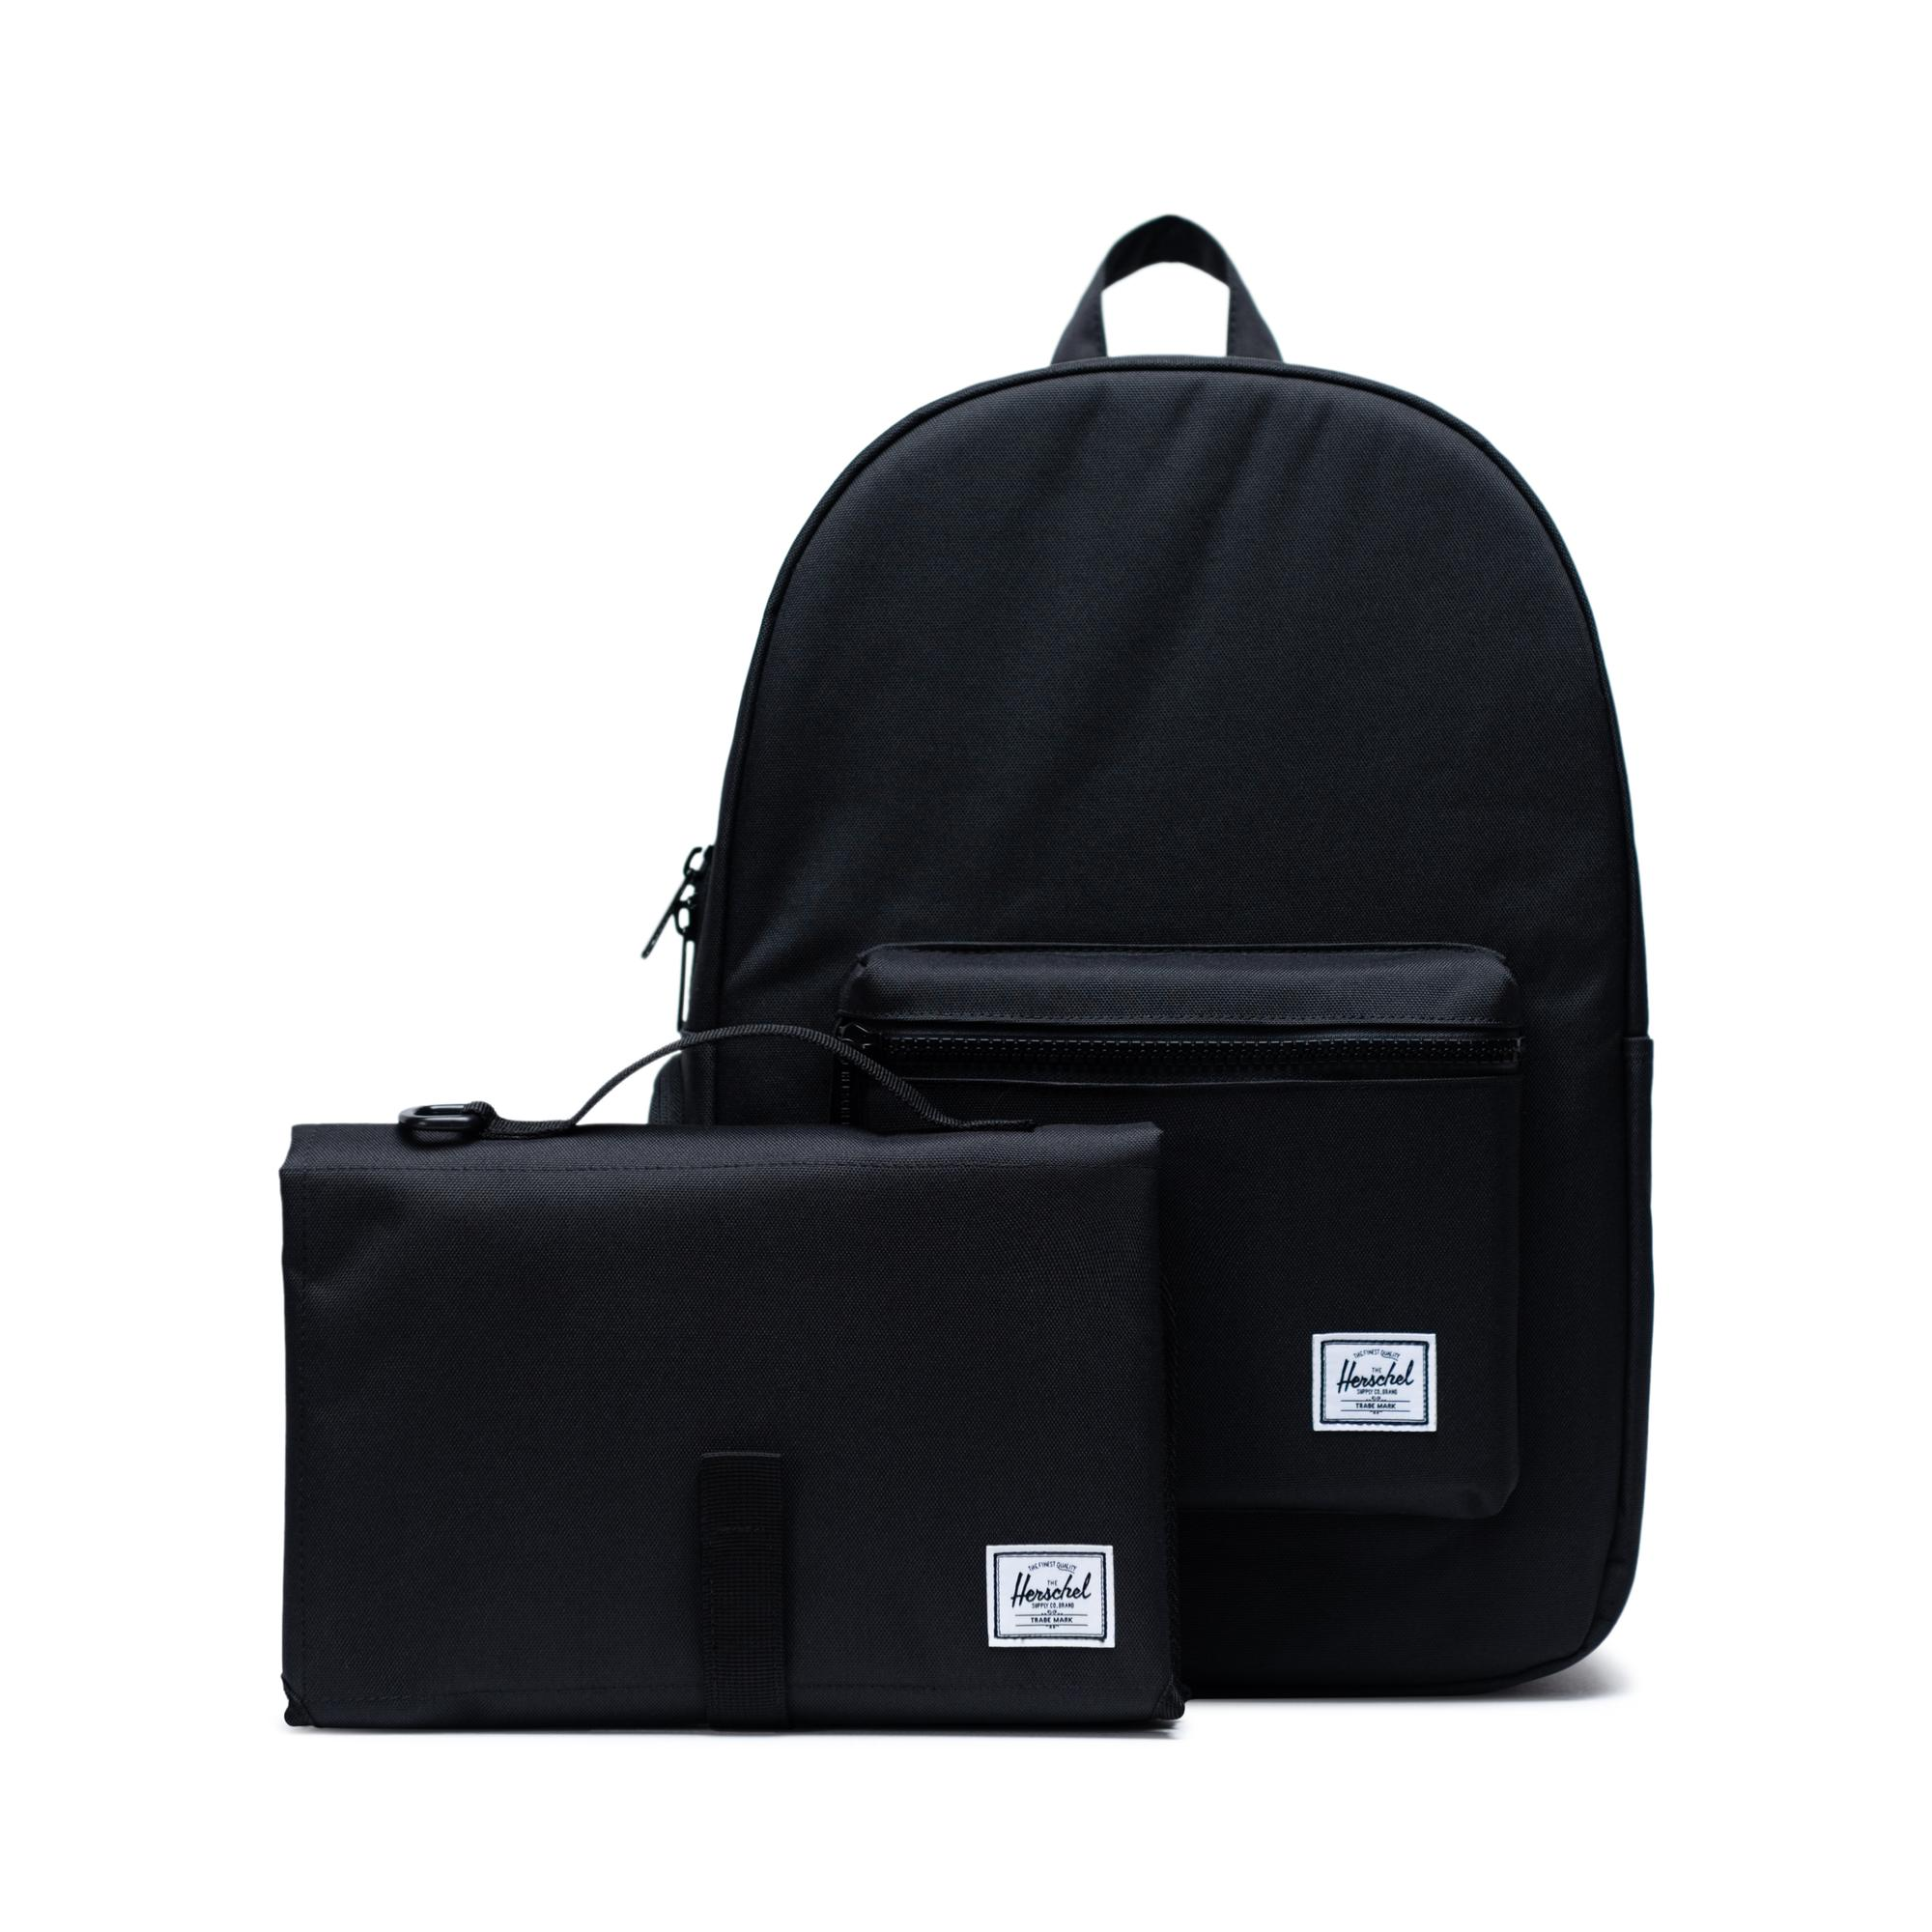 cc870d801825 Settlement Backpack Sprout